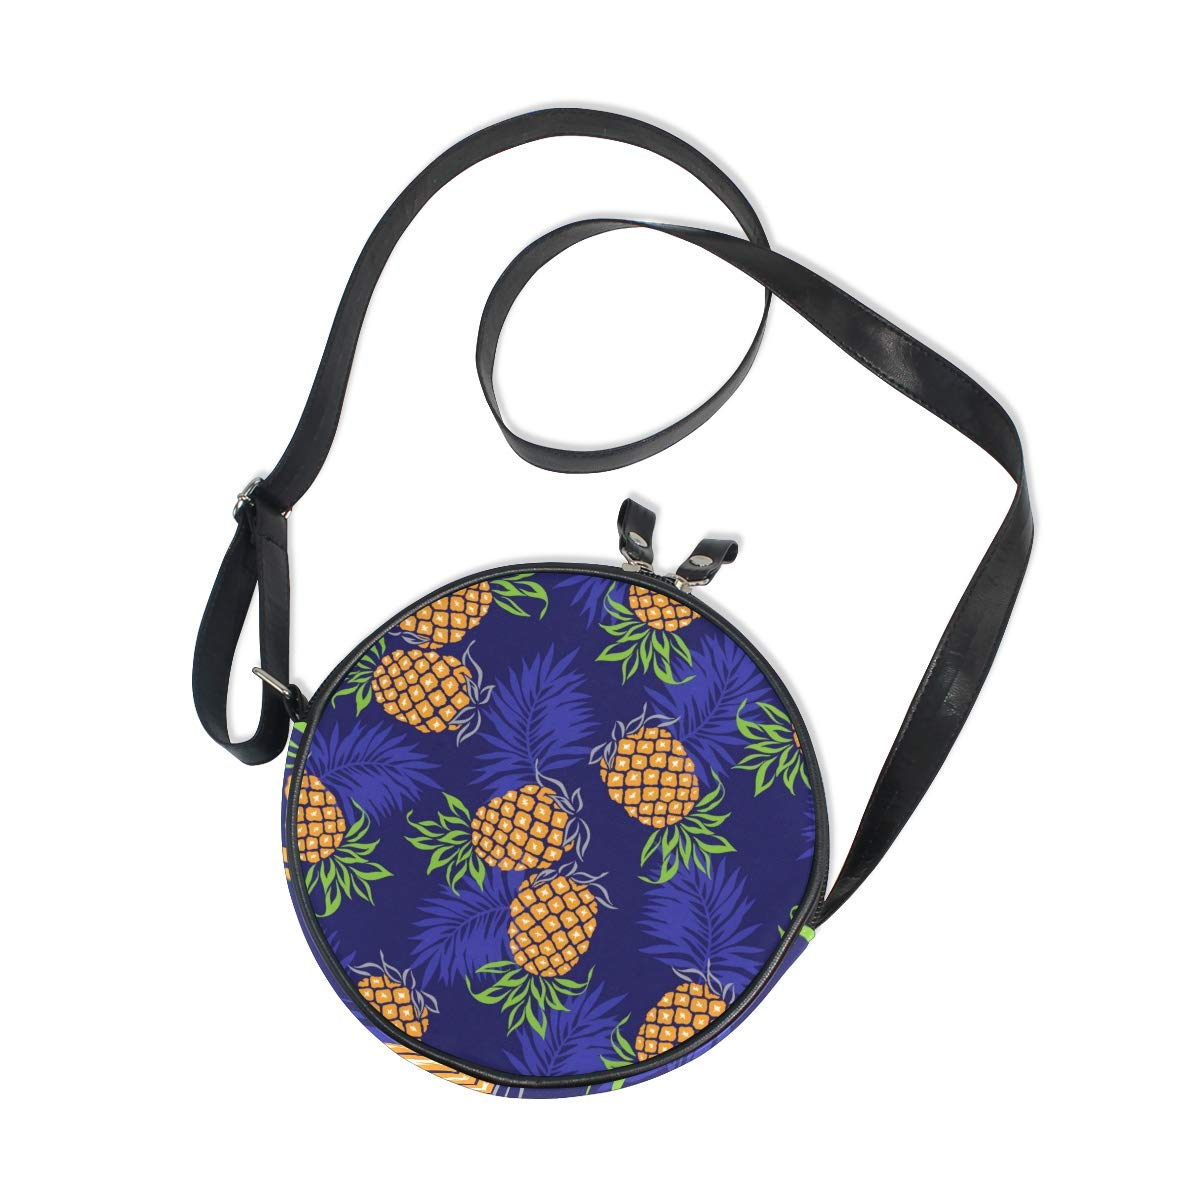 KEAKIA Pineapple Pattern Round Crossbody Bag Shoulder Sling Bag Handbag Purse Satchel Shoulder Bag for Kids Women